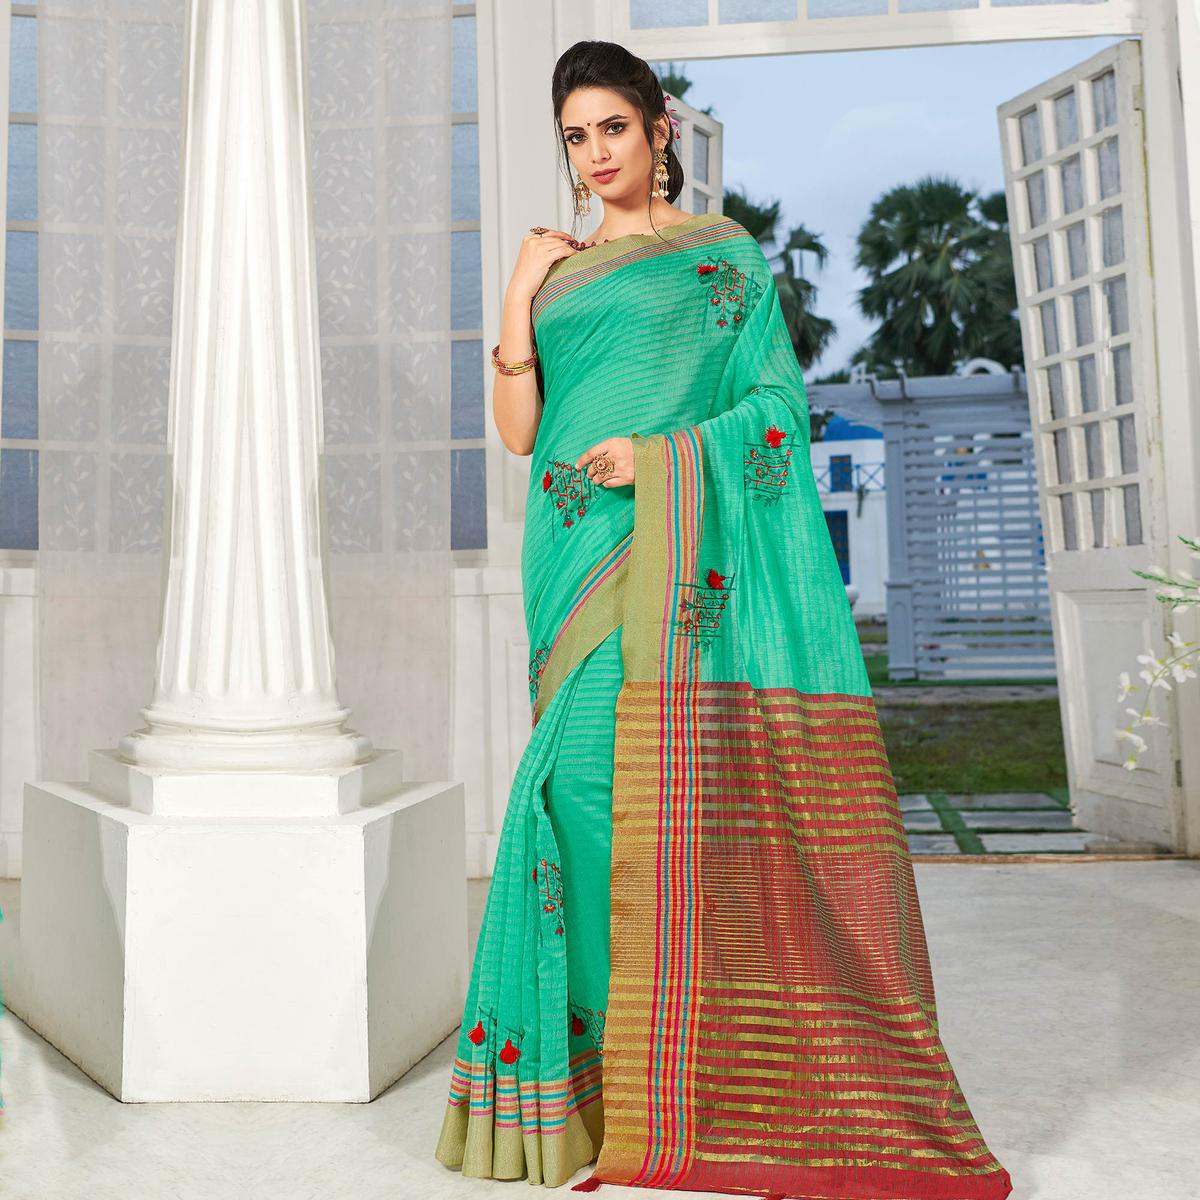 Radiant Turquoise Colored Party Wear Embroidered Cotton Silk Saree With Tassels